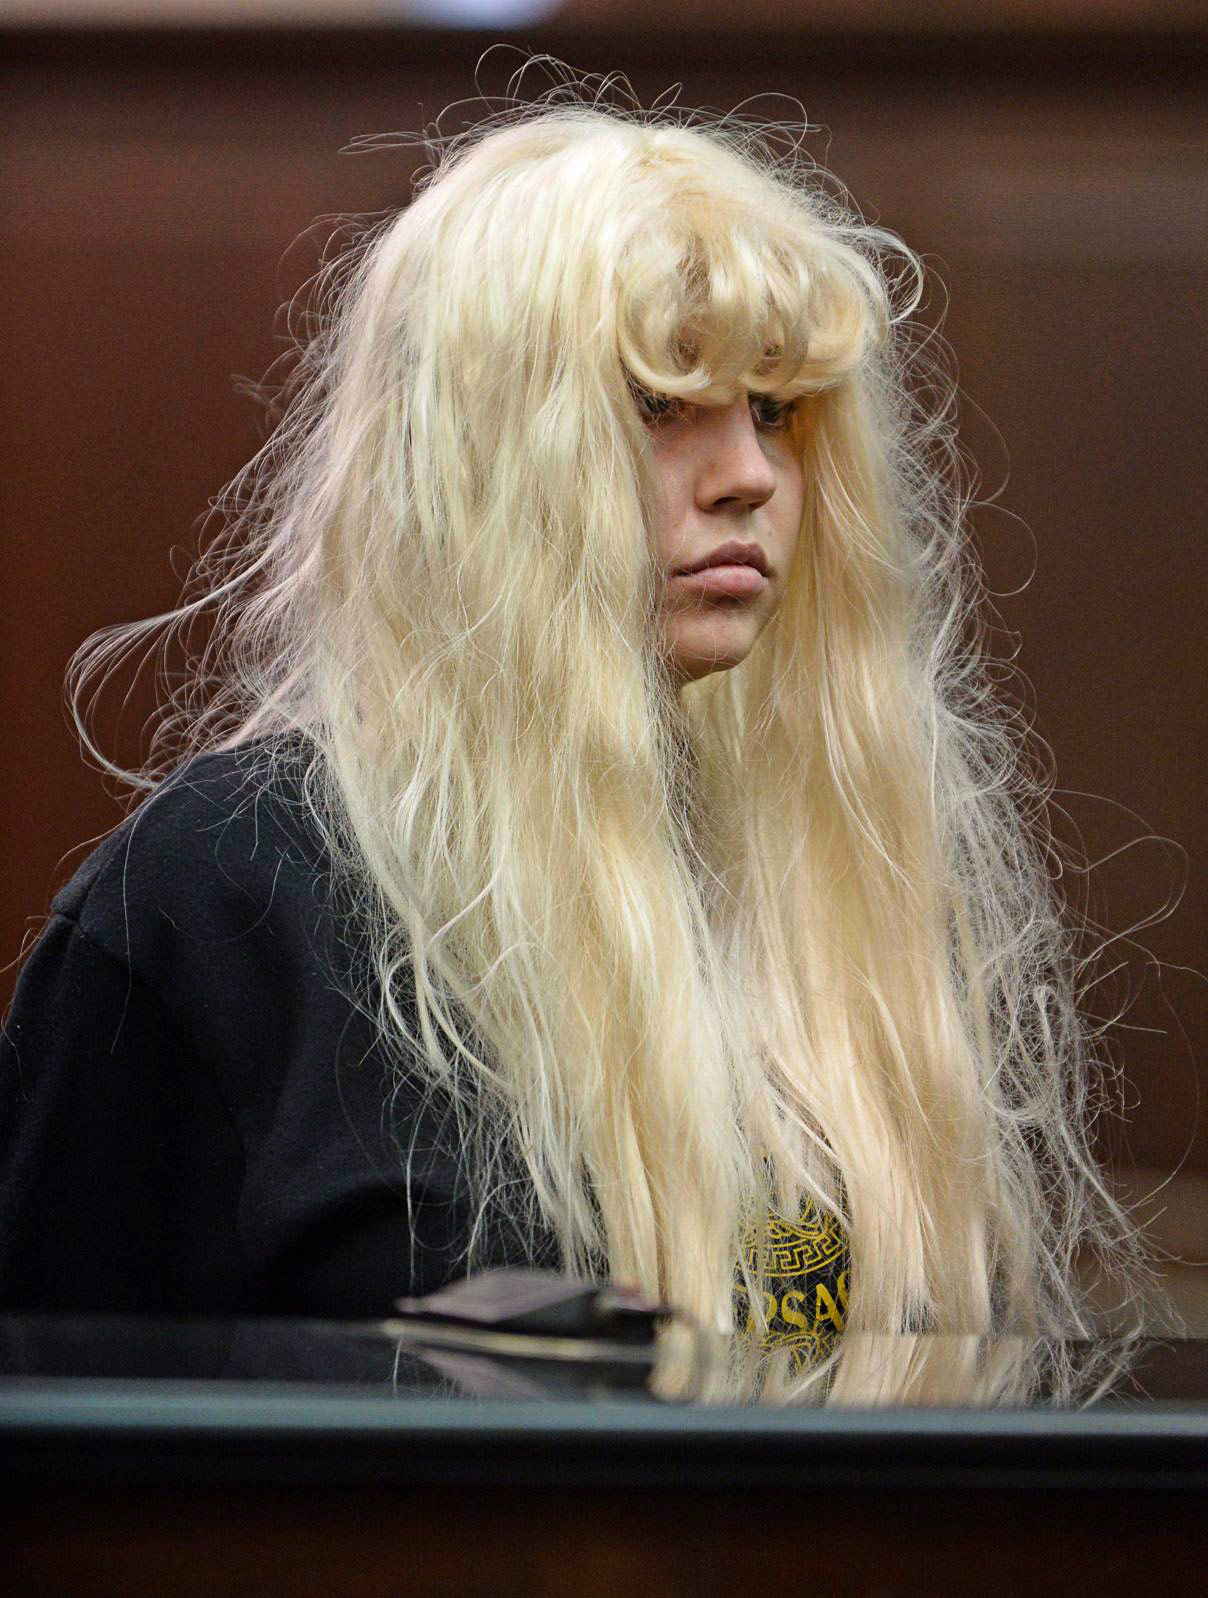 amanda bynes spotted post retirement what she looks like now